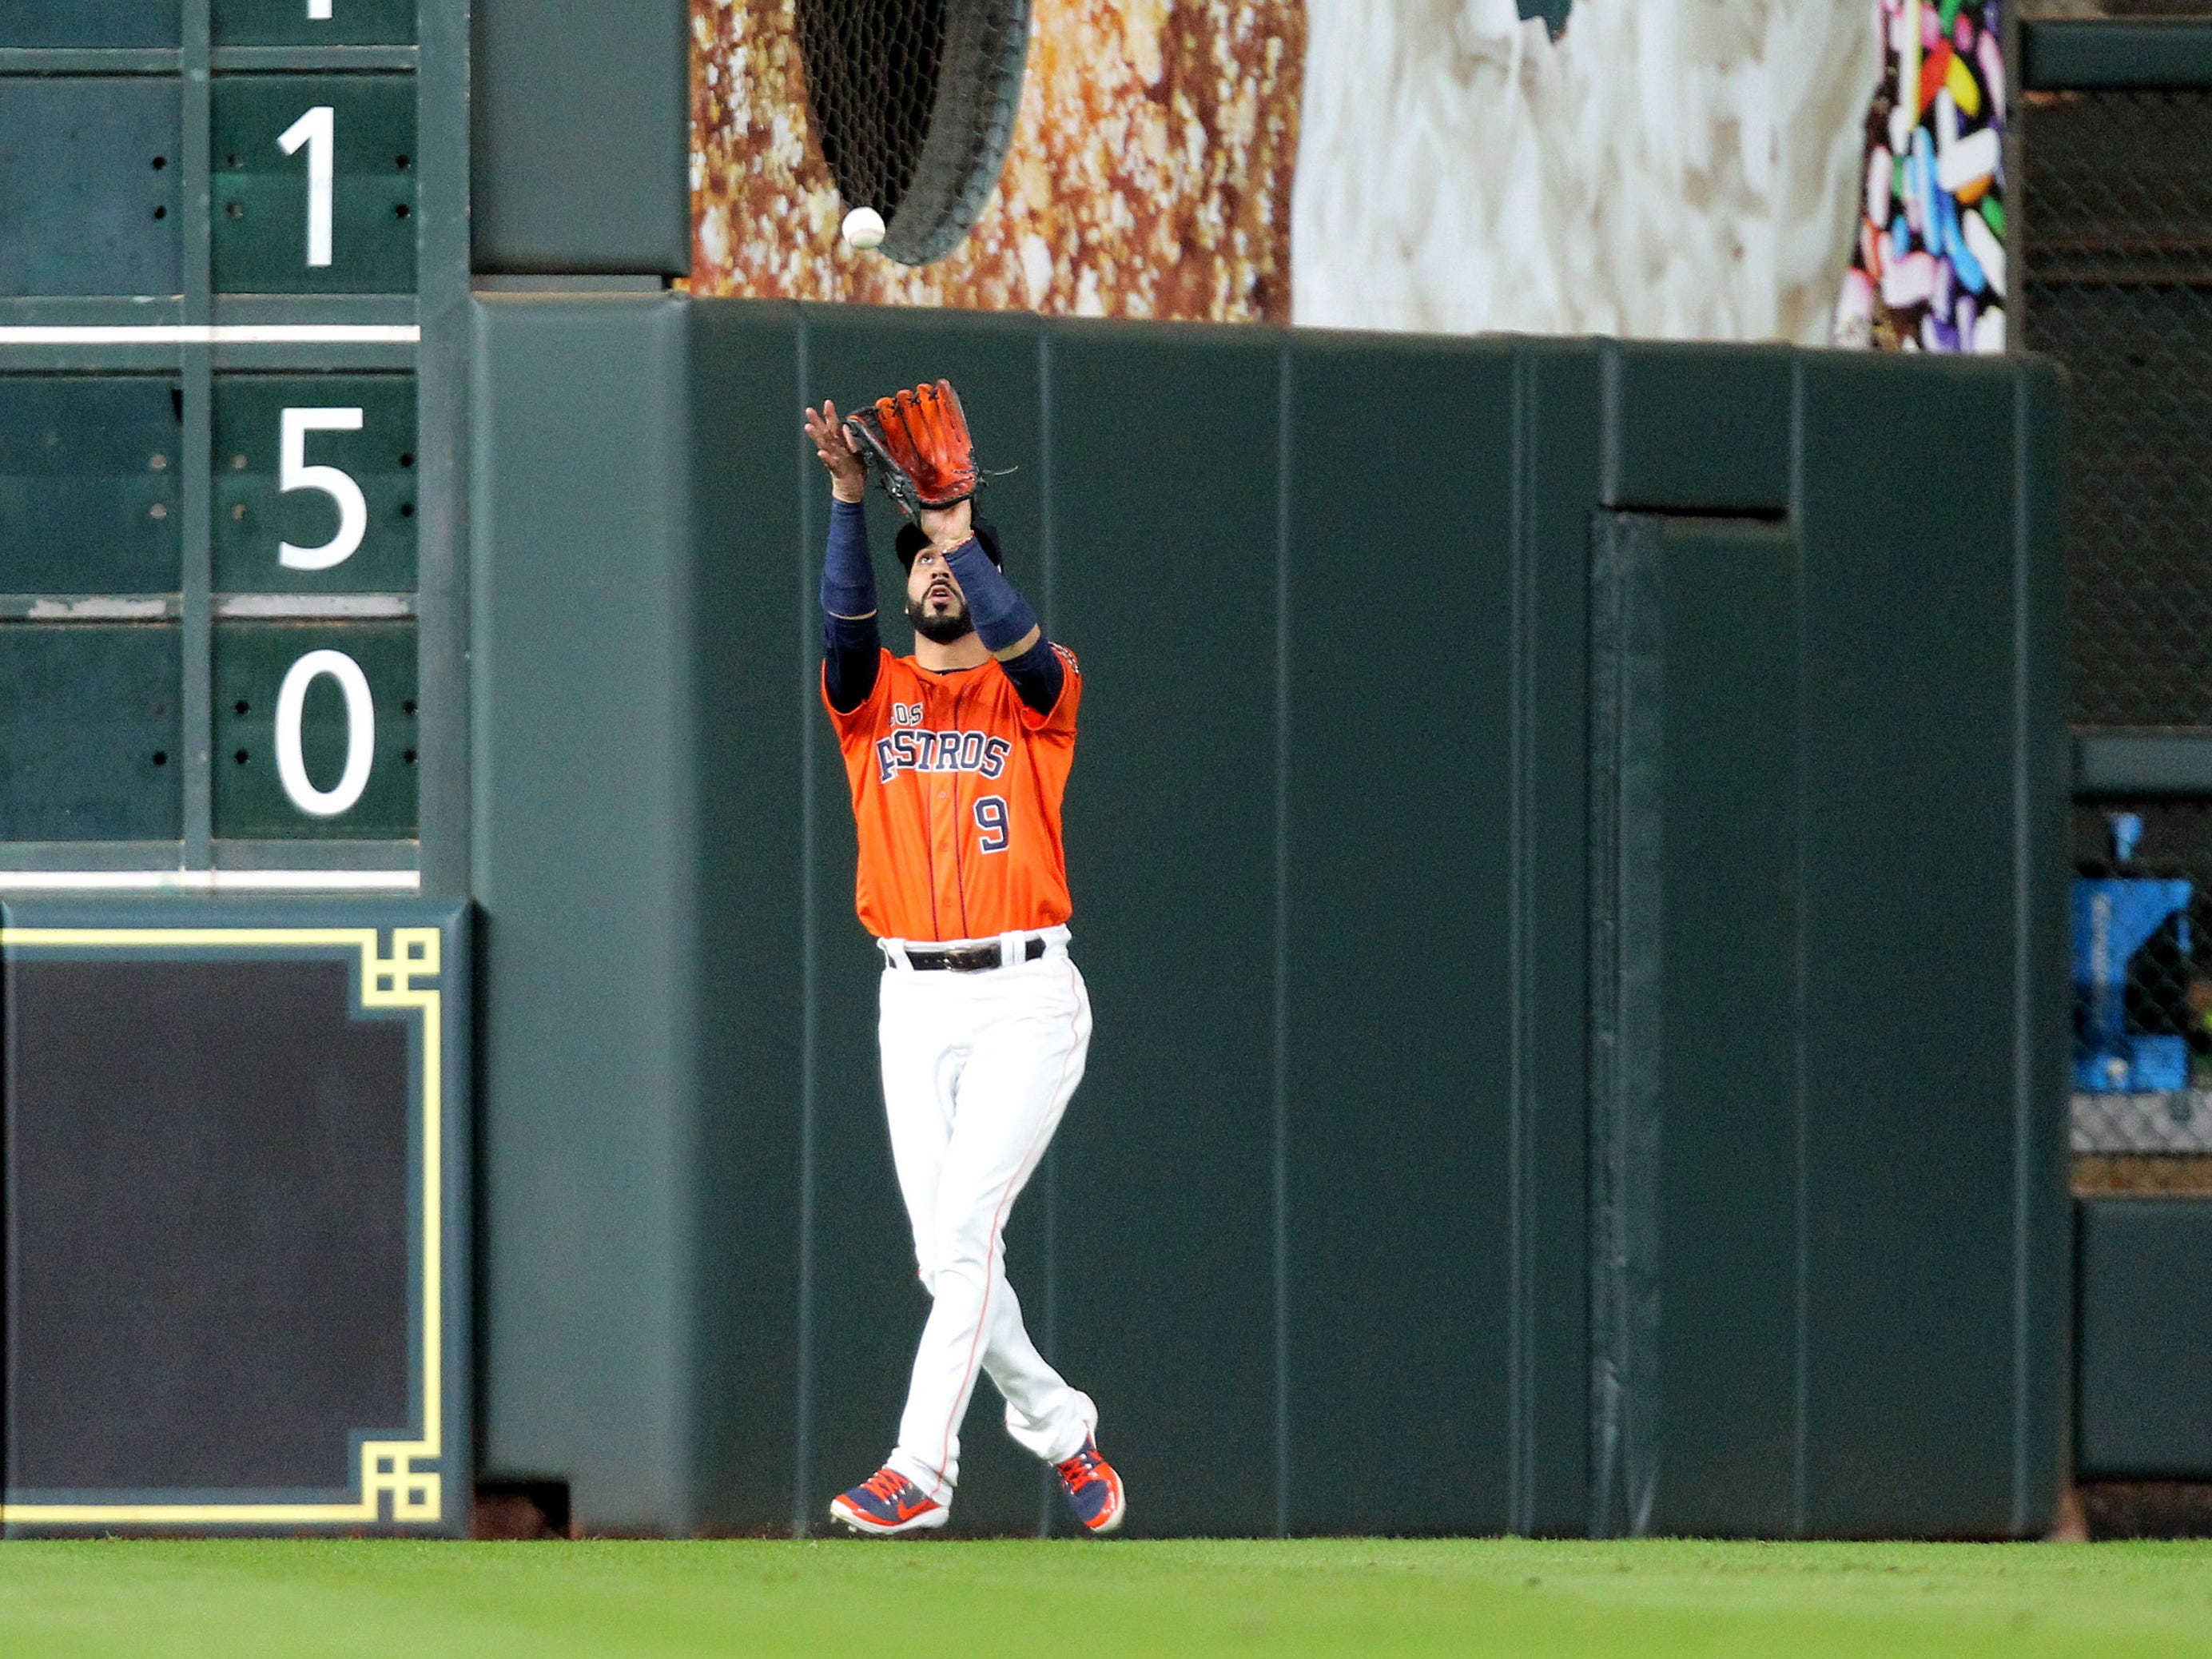 Sep 14, 2018: Houston Astros left fielder Marwin Gonzalez (9) catches a fly ball for an out to retire the side against the Arizona Diamondbacks during the fourth inning at Minute Maid Park.